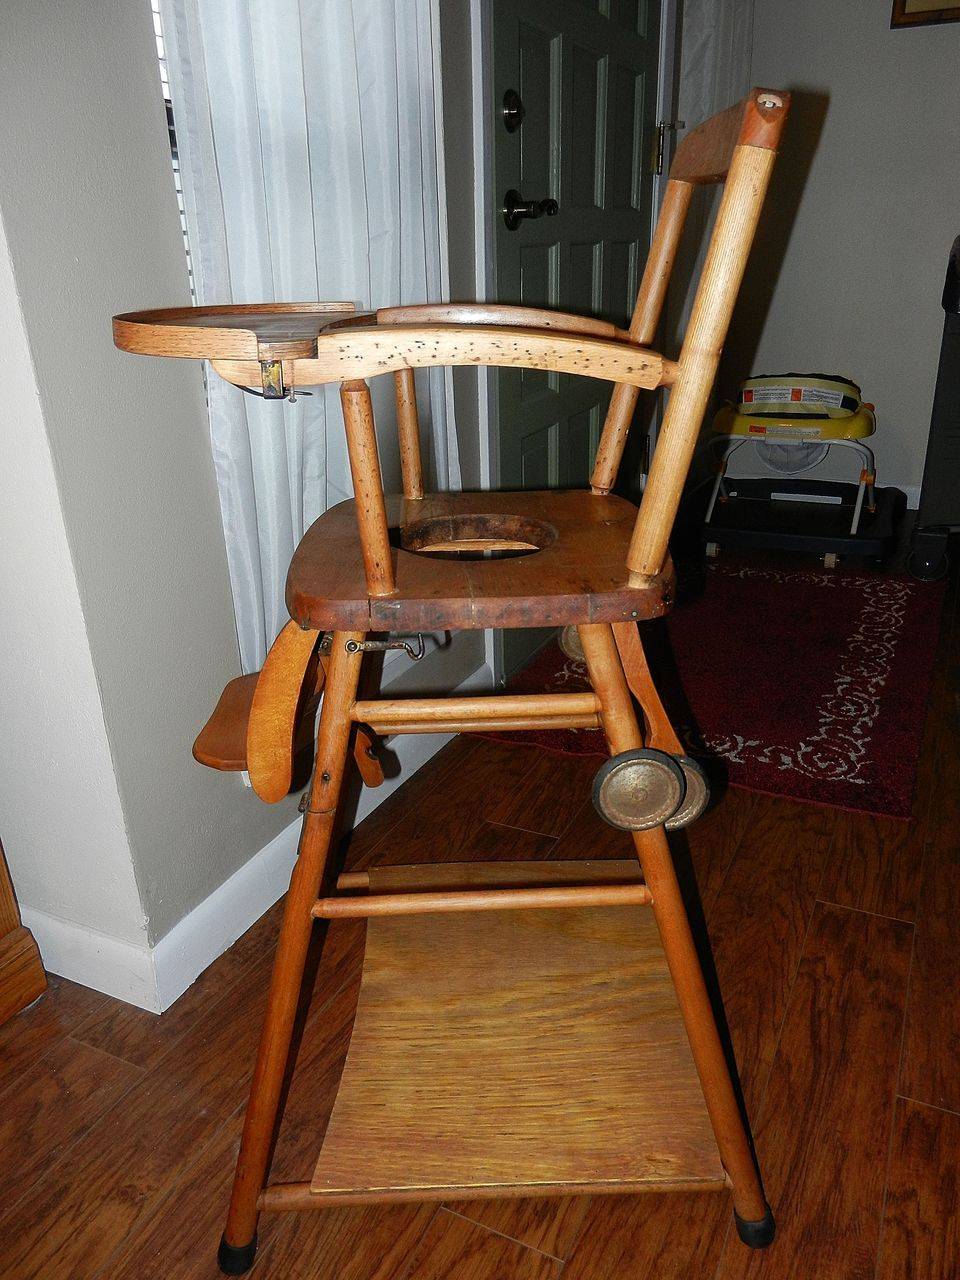 Roll over Large image to magnify, click Large image to zoom. Change  Background. Expand Description. This Vintage Wooden High Chair ... - Vintage Wooden High Chair, Potty Chair And Play Chair In One From